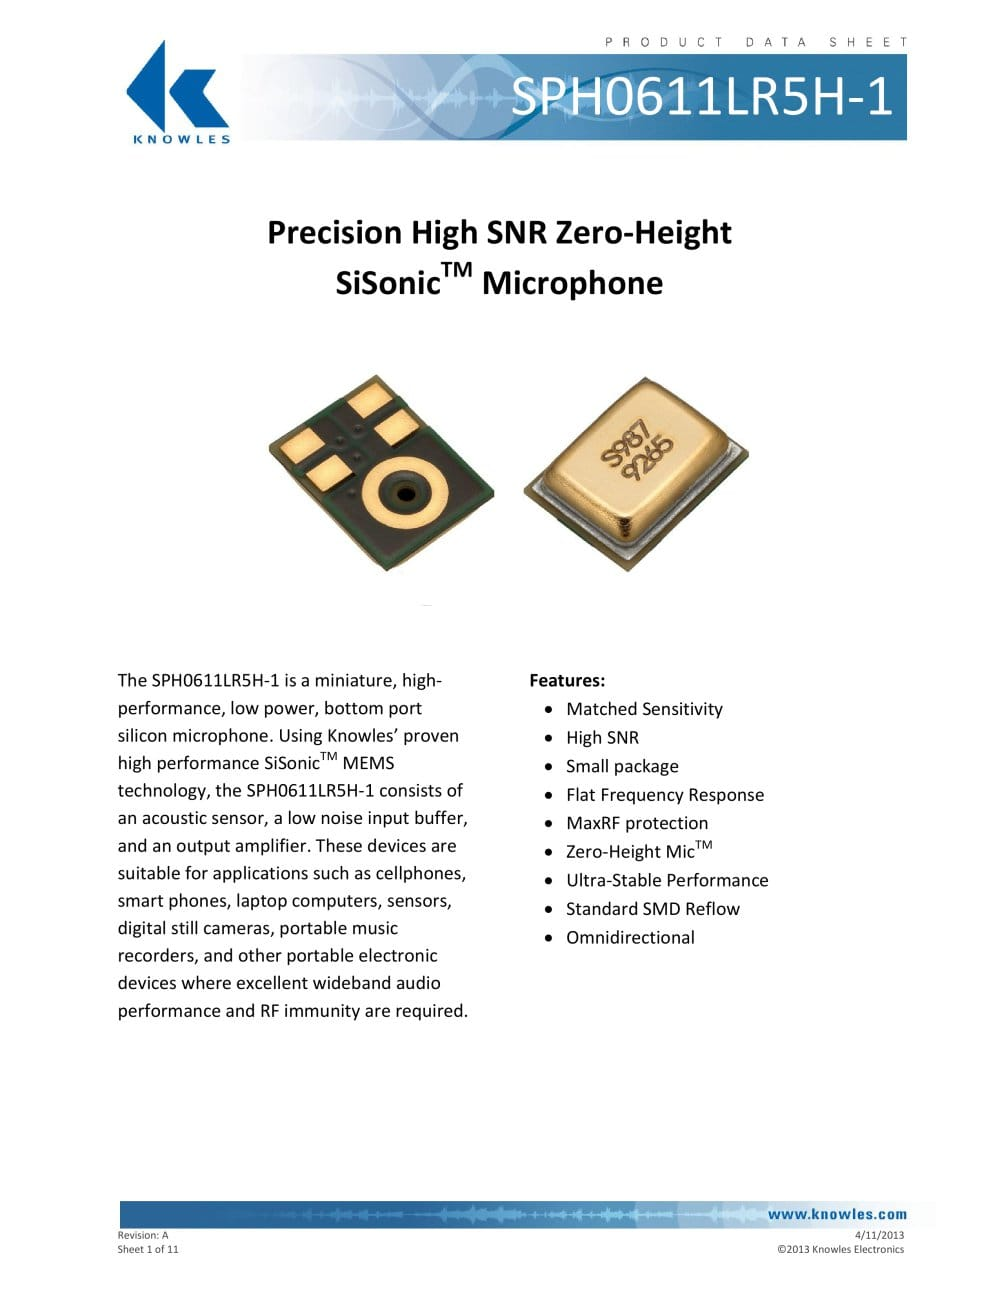 Ultra Low Noise Microphone Sph0611lr5h 1 Surface Mount Mems Knowles Electronics Llc Pdf 11 Pages